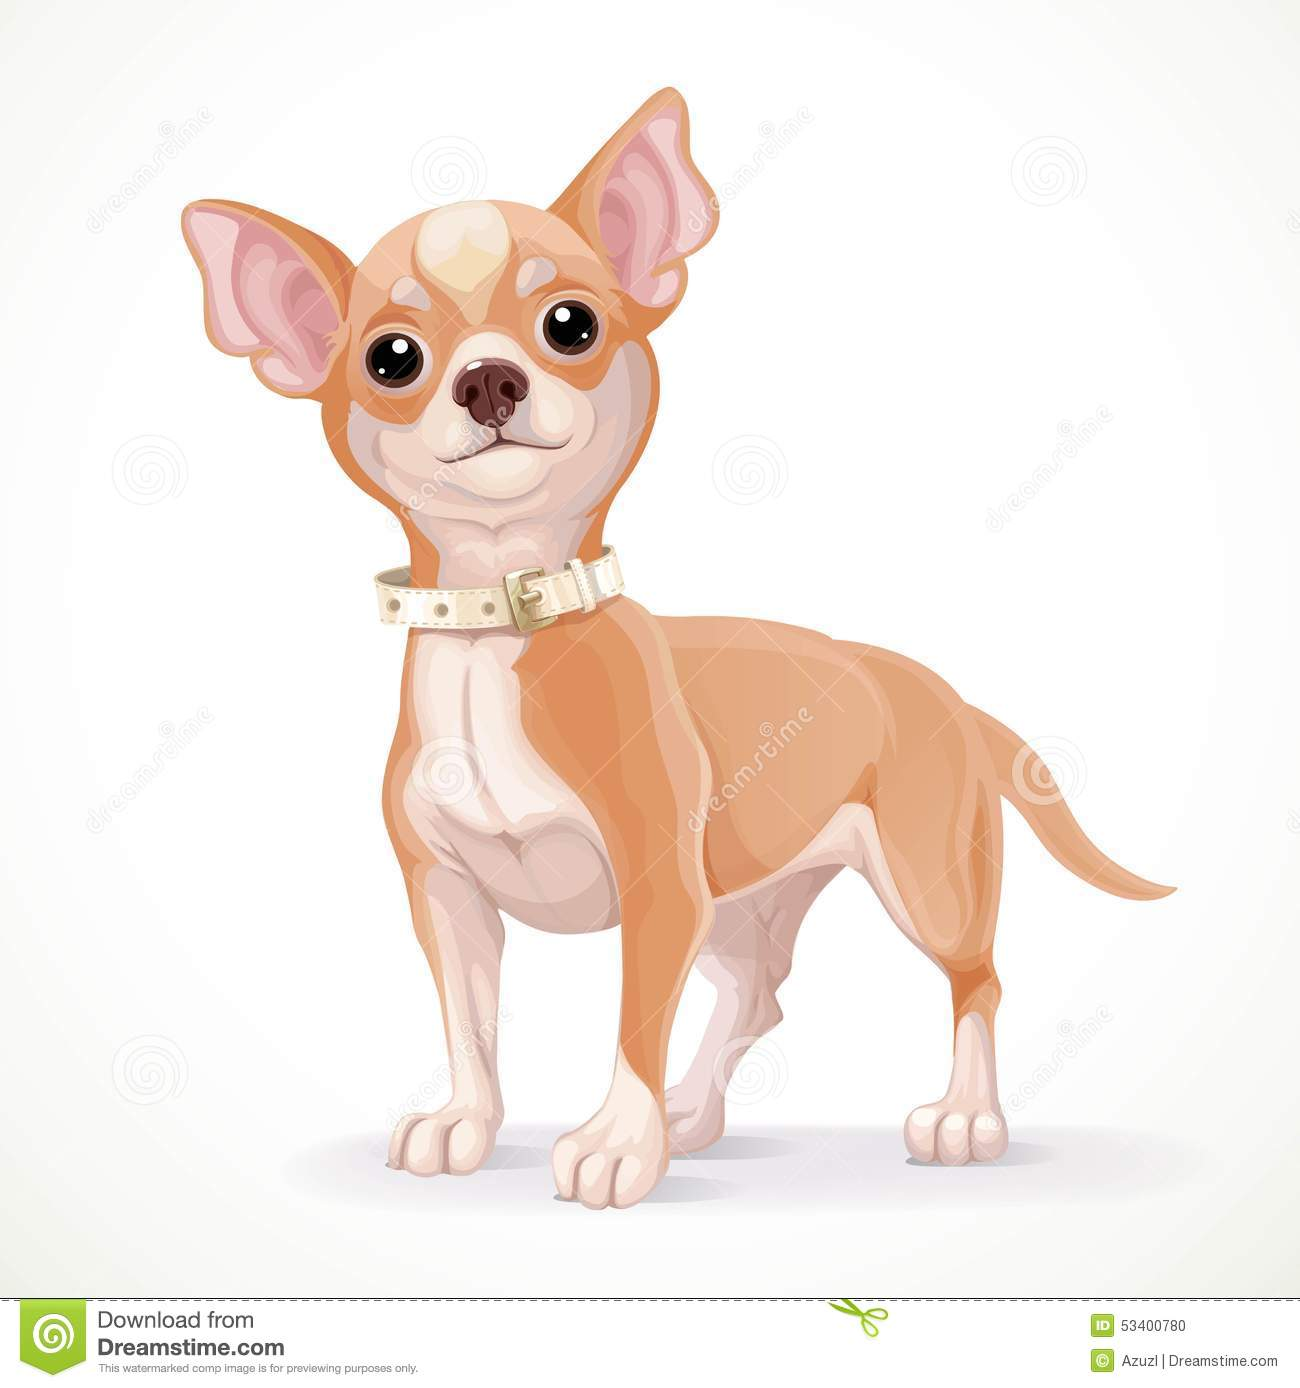 chihuahua dog clipart - photo #10